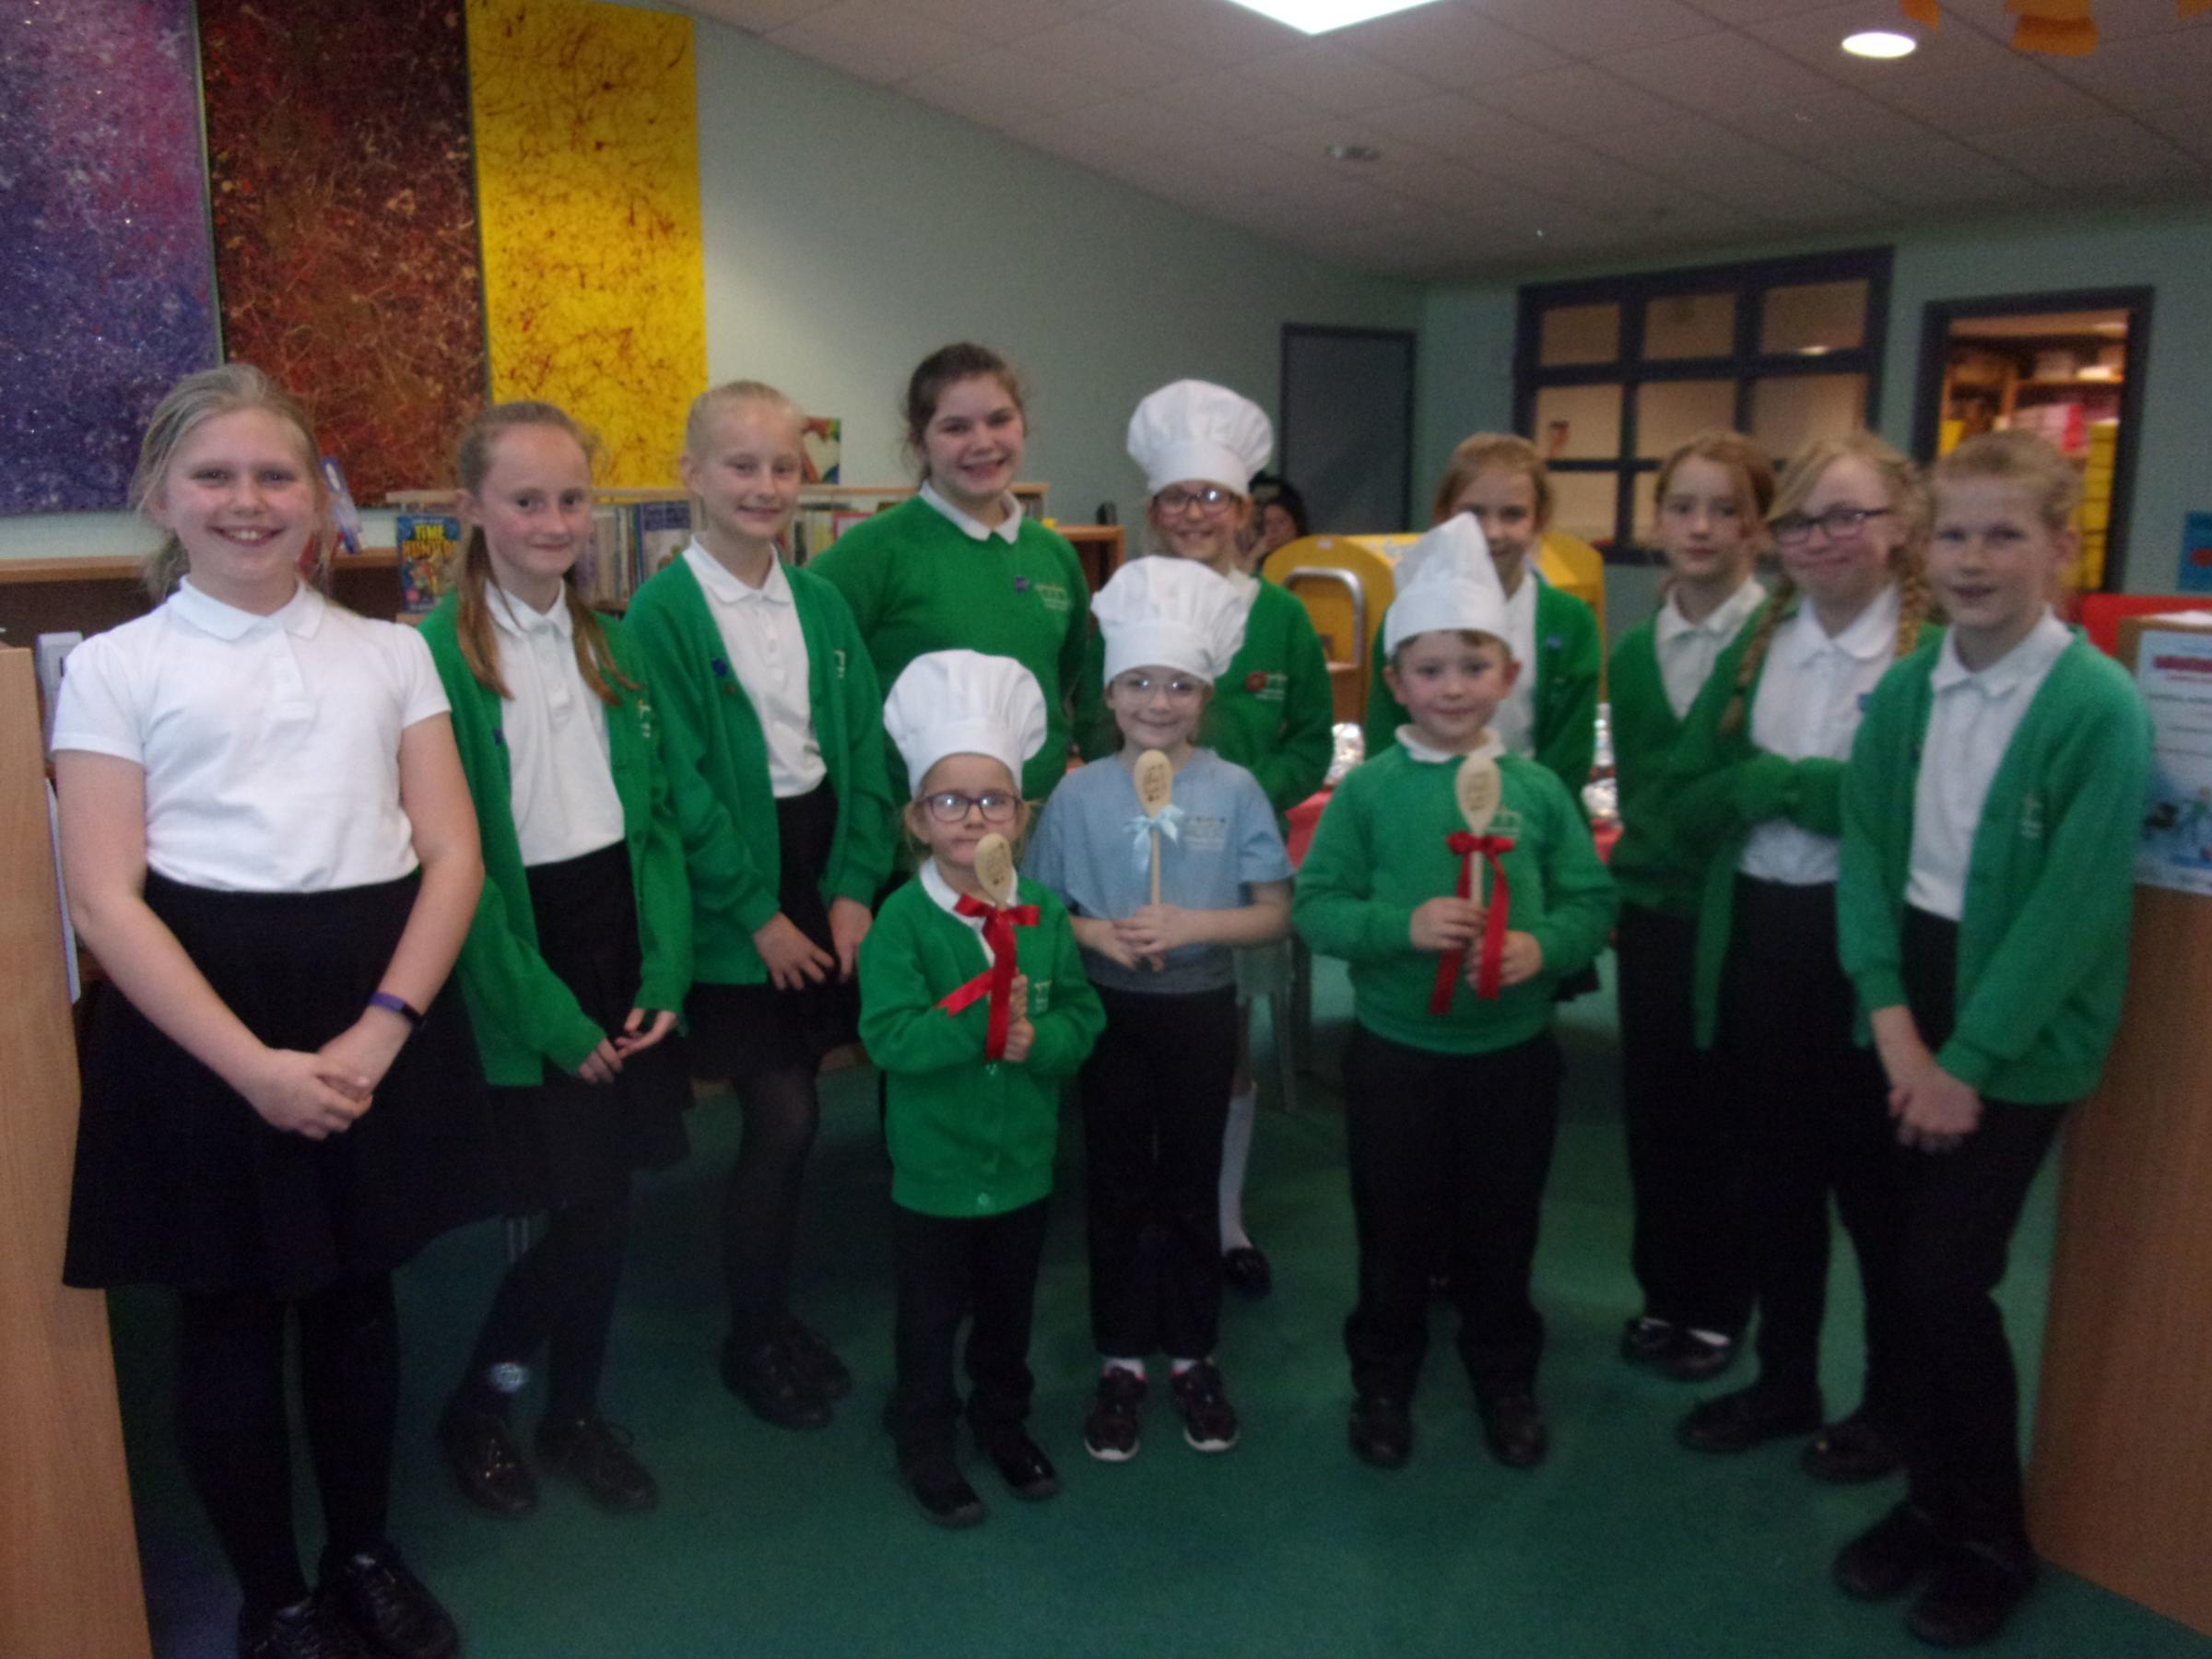 COOKING UP A STORM: The talented young bakers at Somerset Bridge Primary School